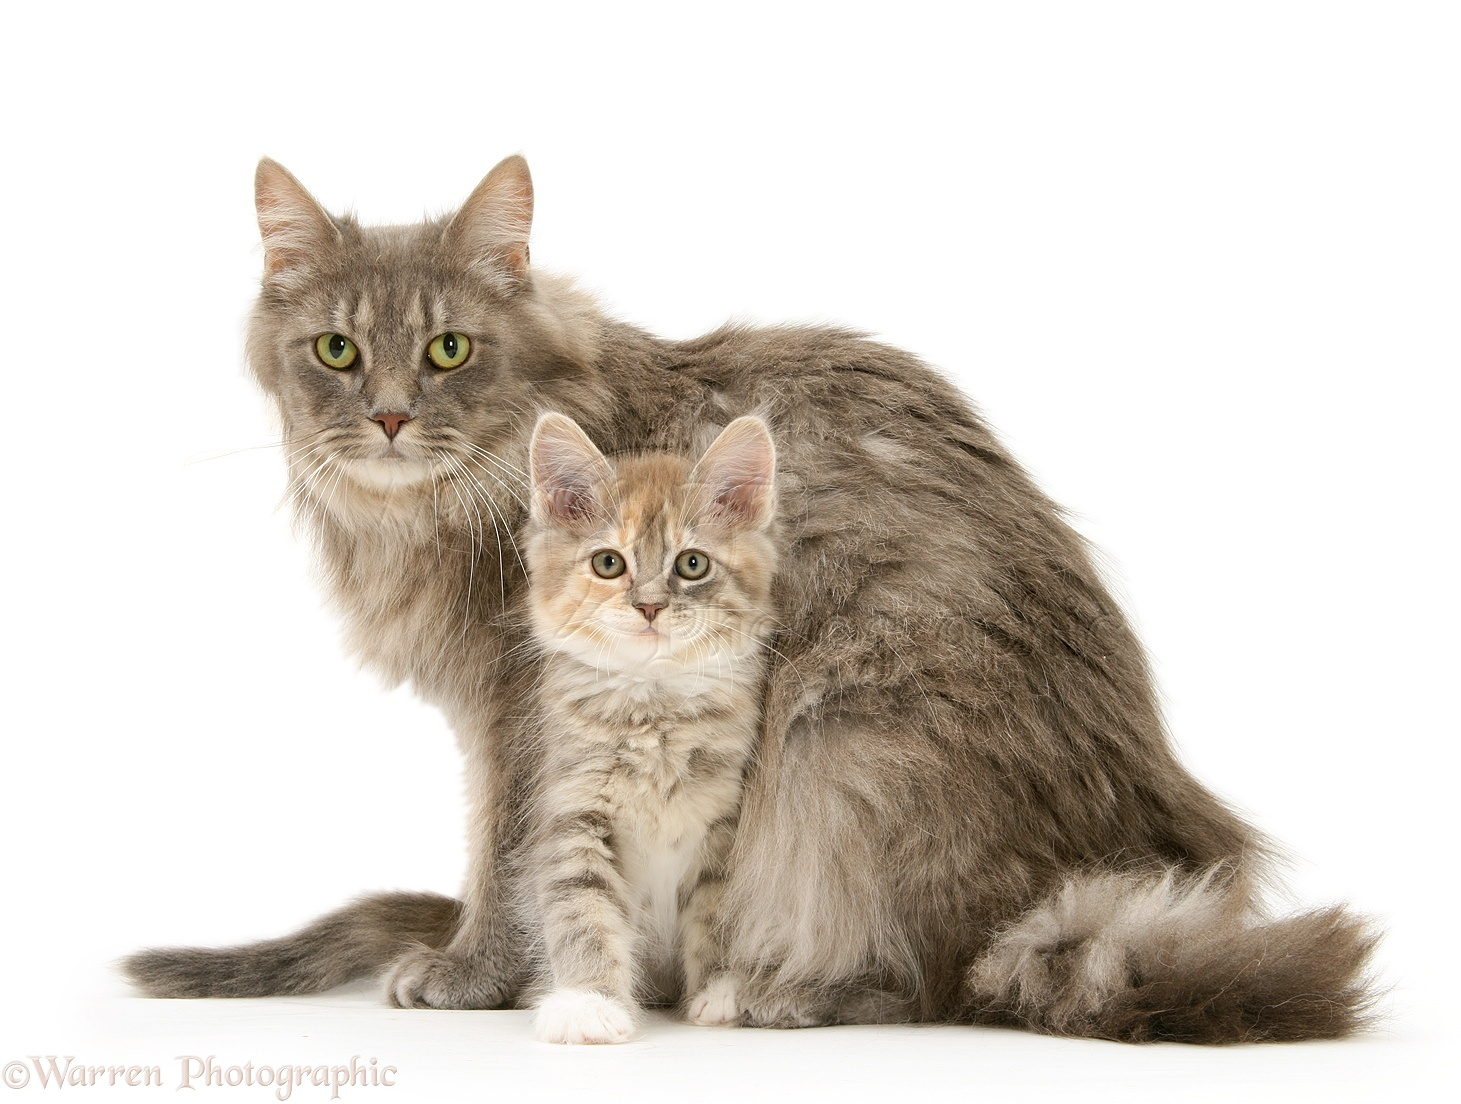 Maine Coon mother cat and kitten photo - WP21927 Tabby Maine Coon Kitten